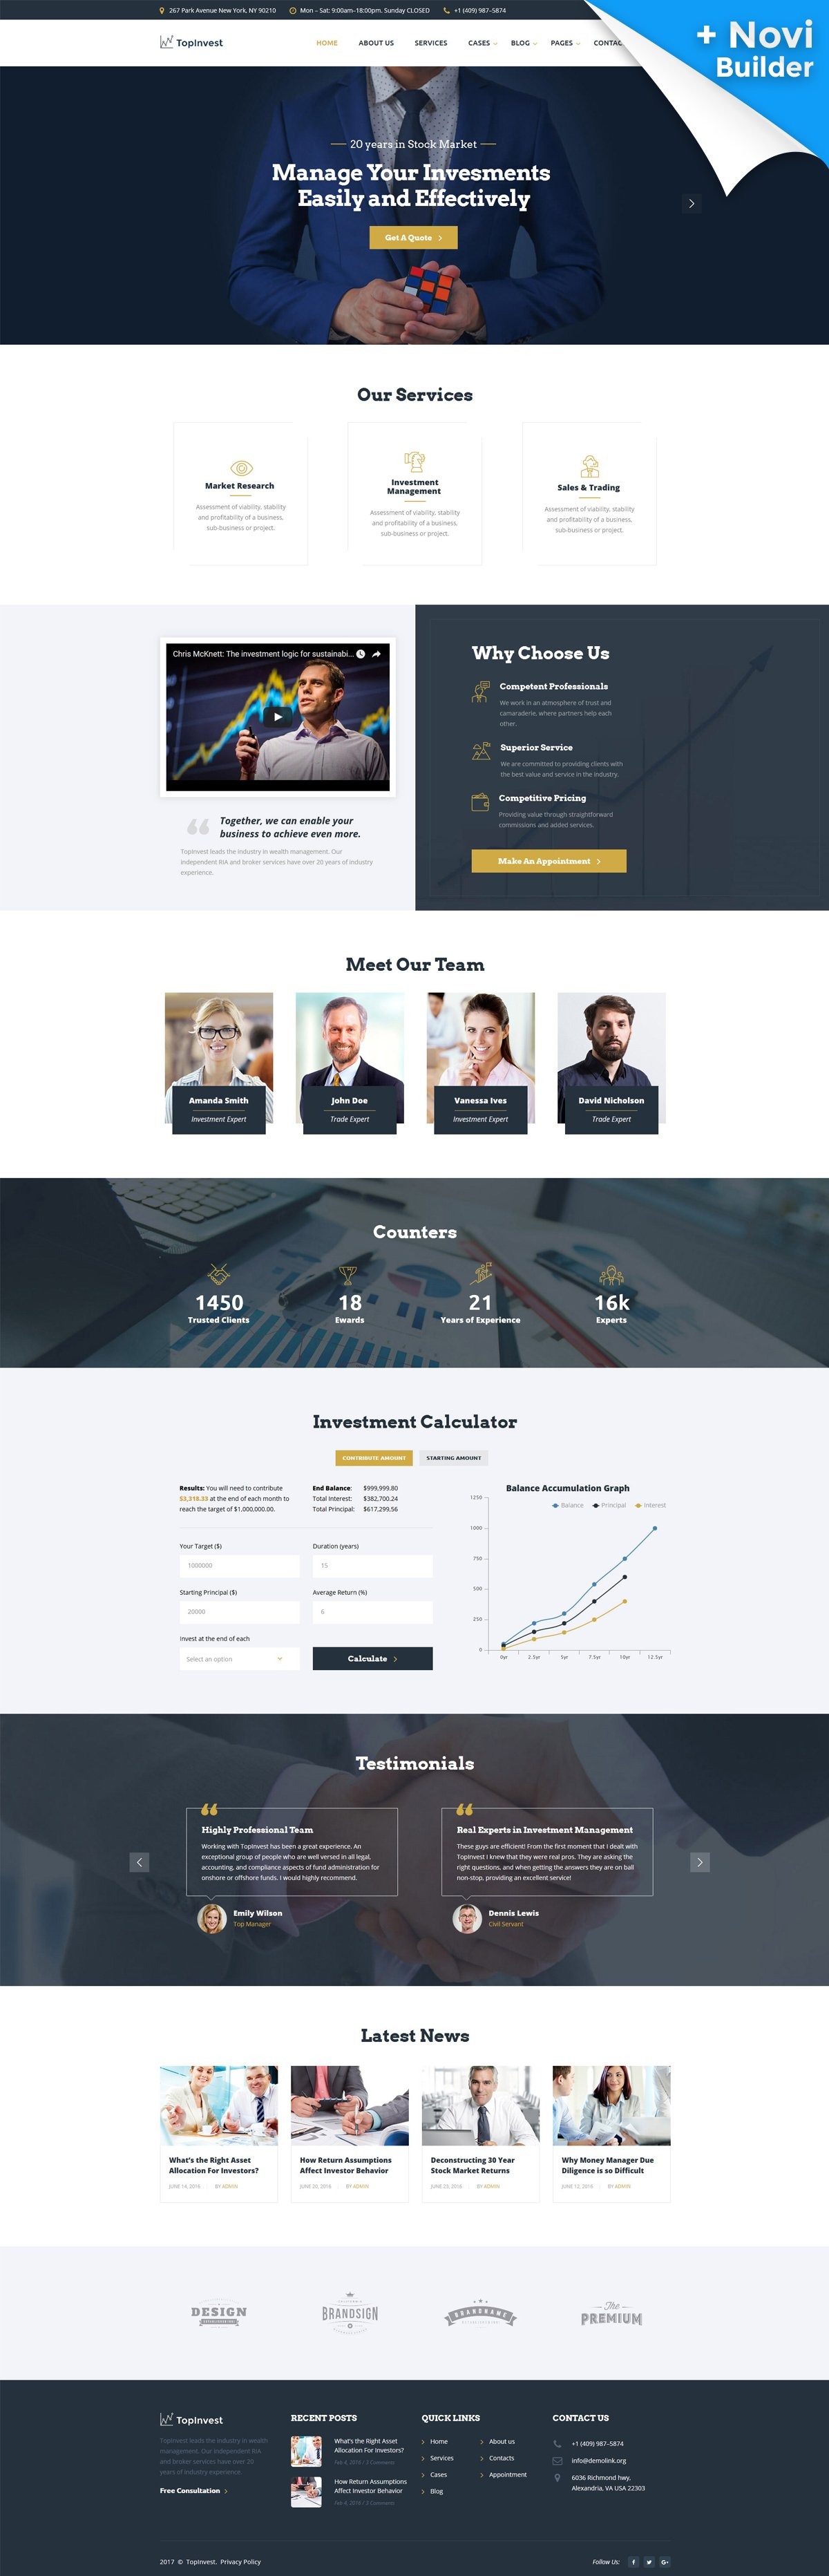 10 HTML Website Themes - $19 - topinvest investment company responsive multipage website template 61344 original